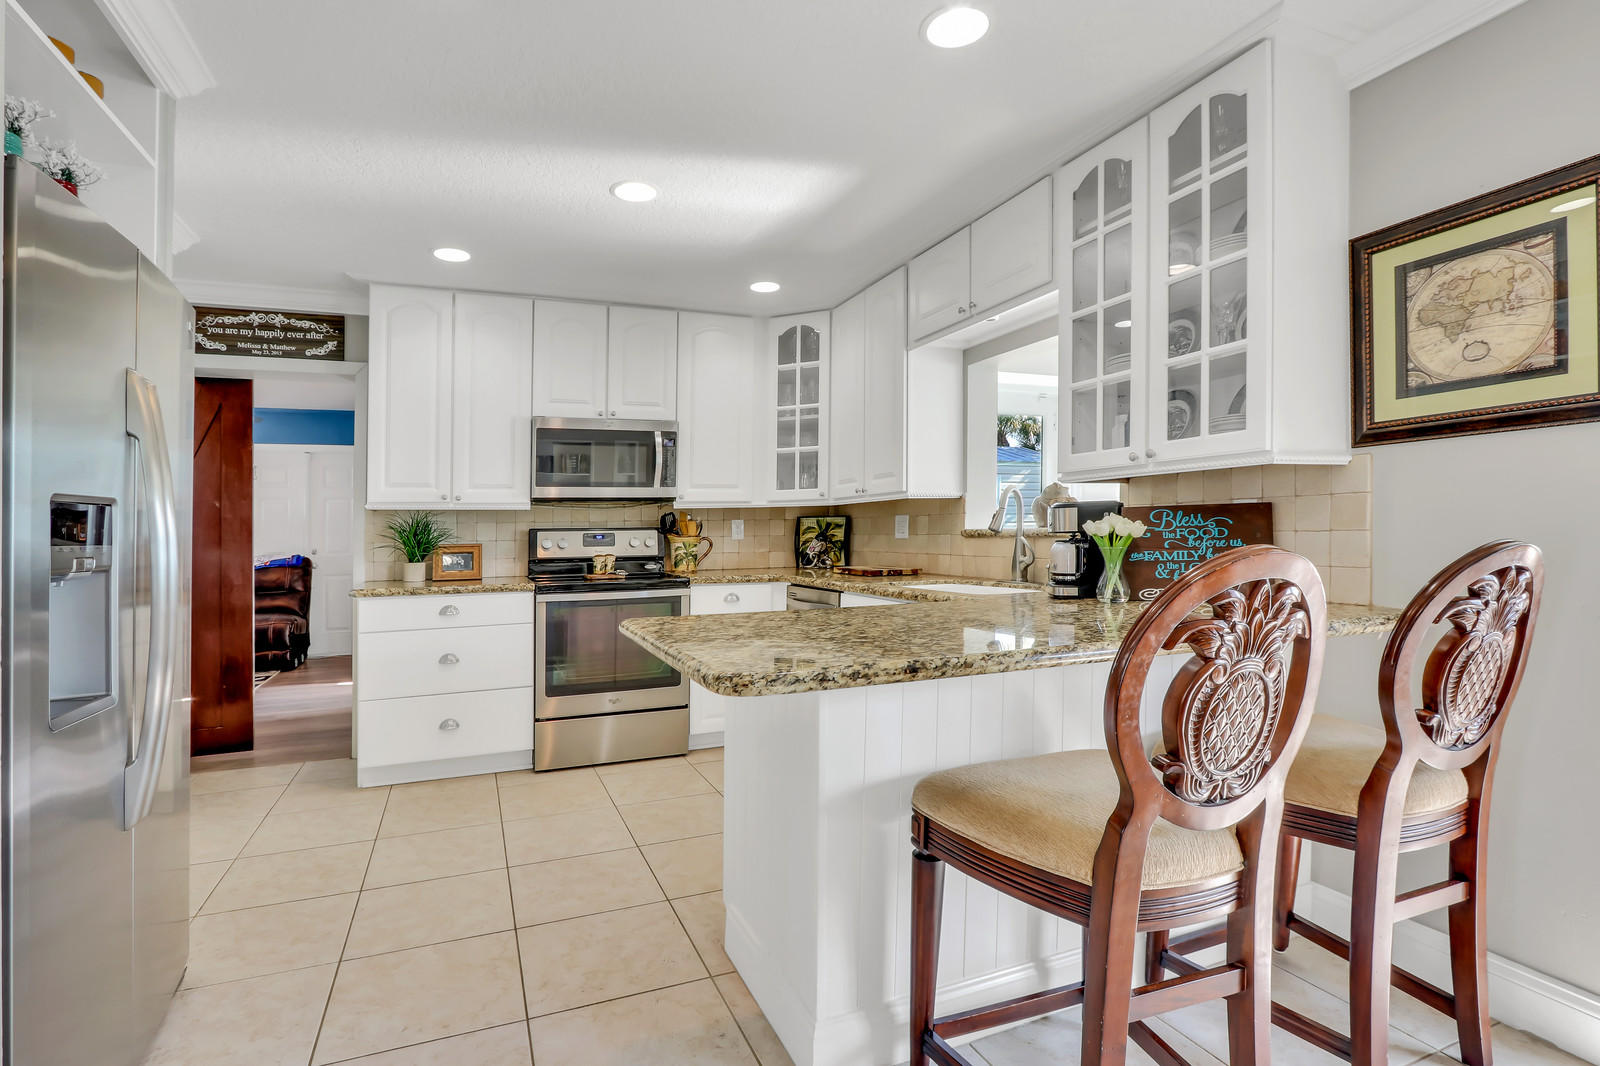 INDIAN RIVER GARDENS REALTY